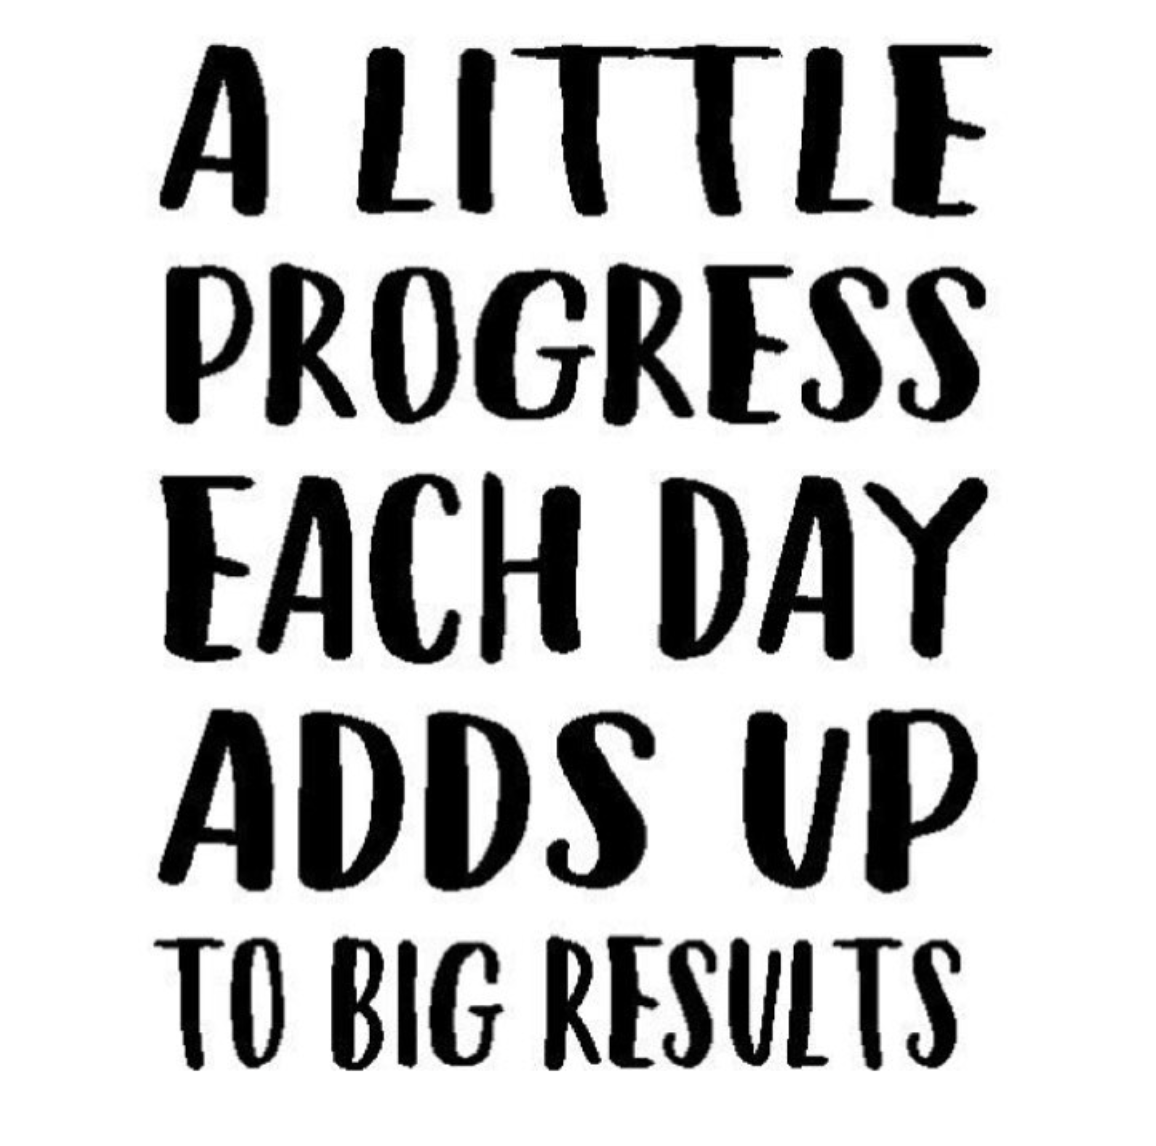 [Image] A little progress each day adds up to big results.